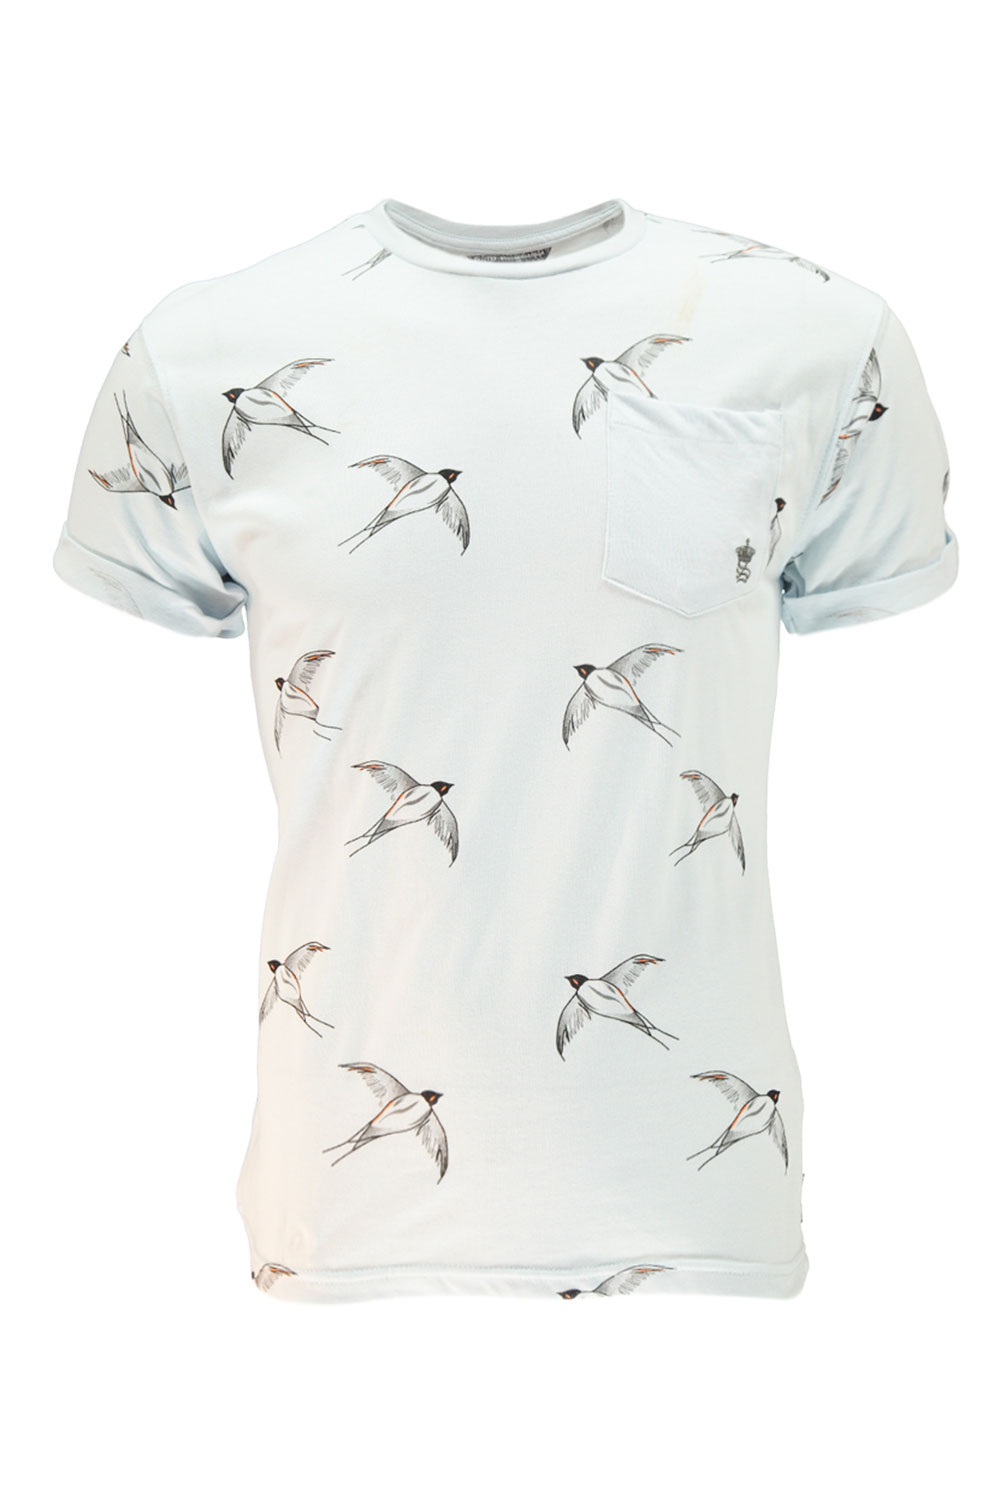 Men S Bird Print Shirt